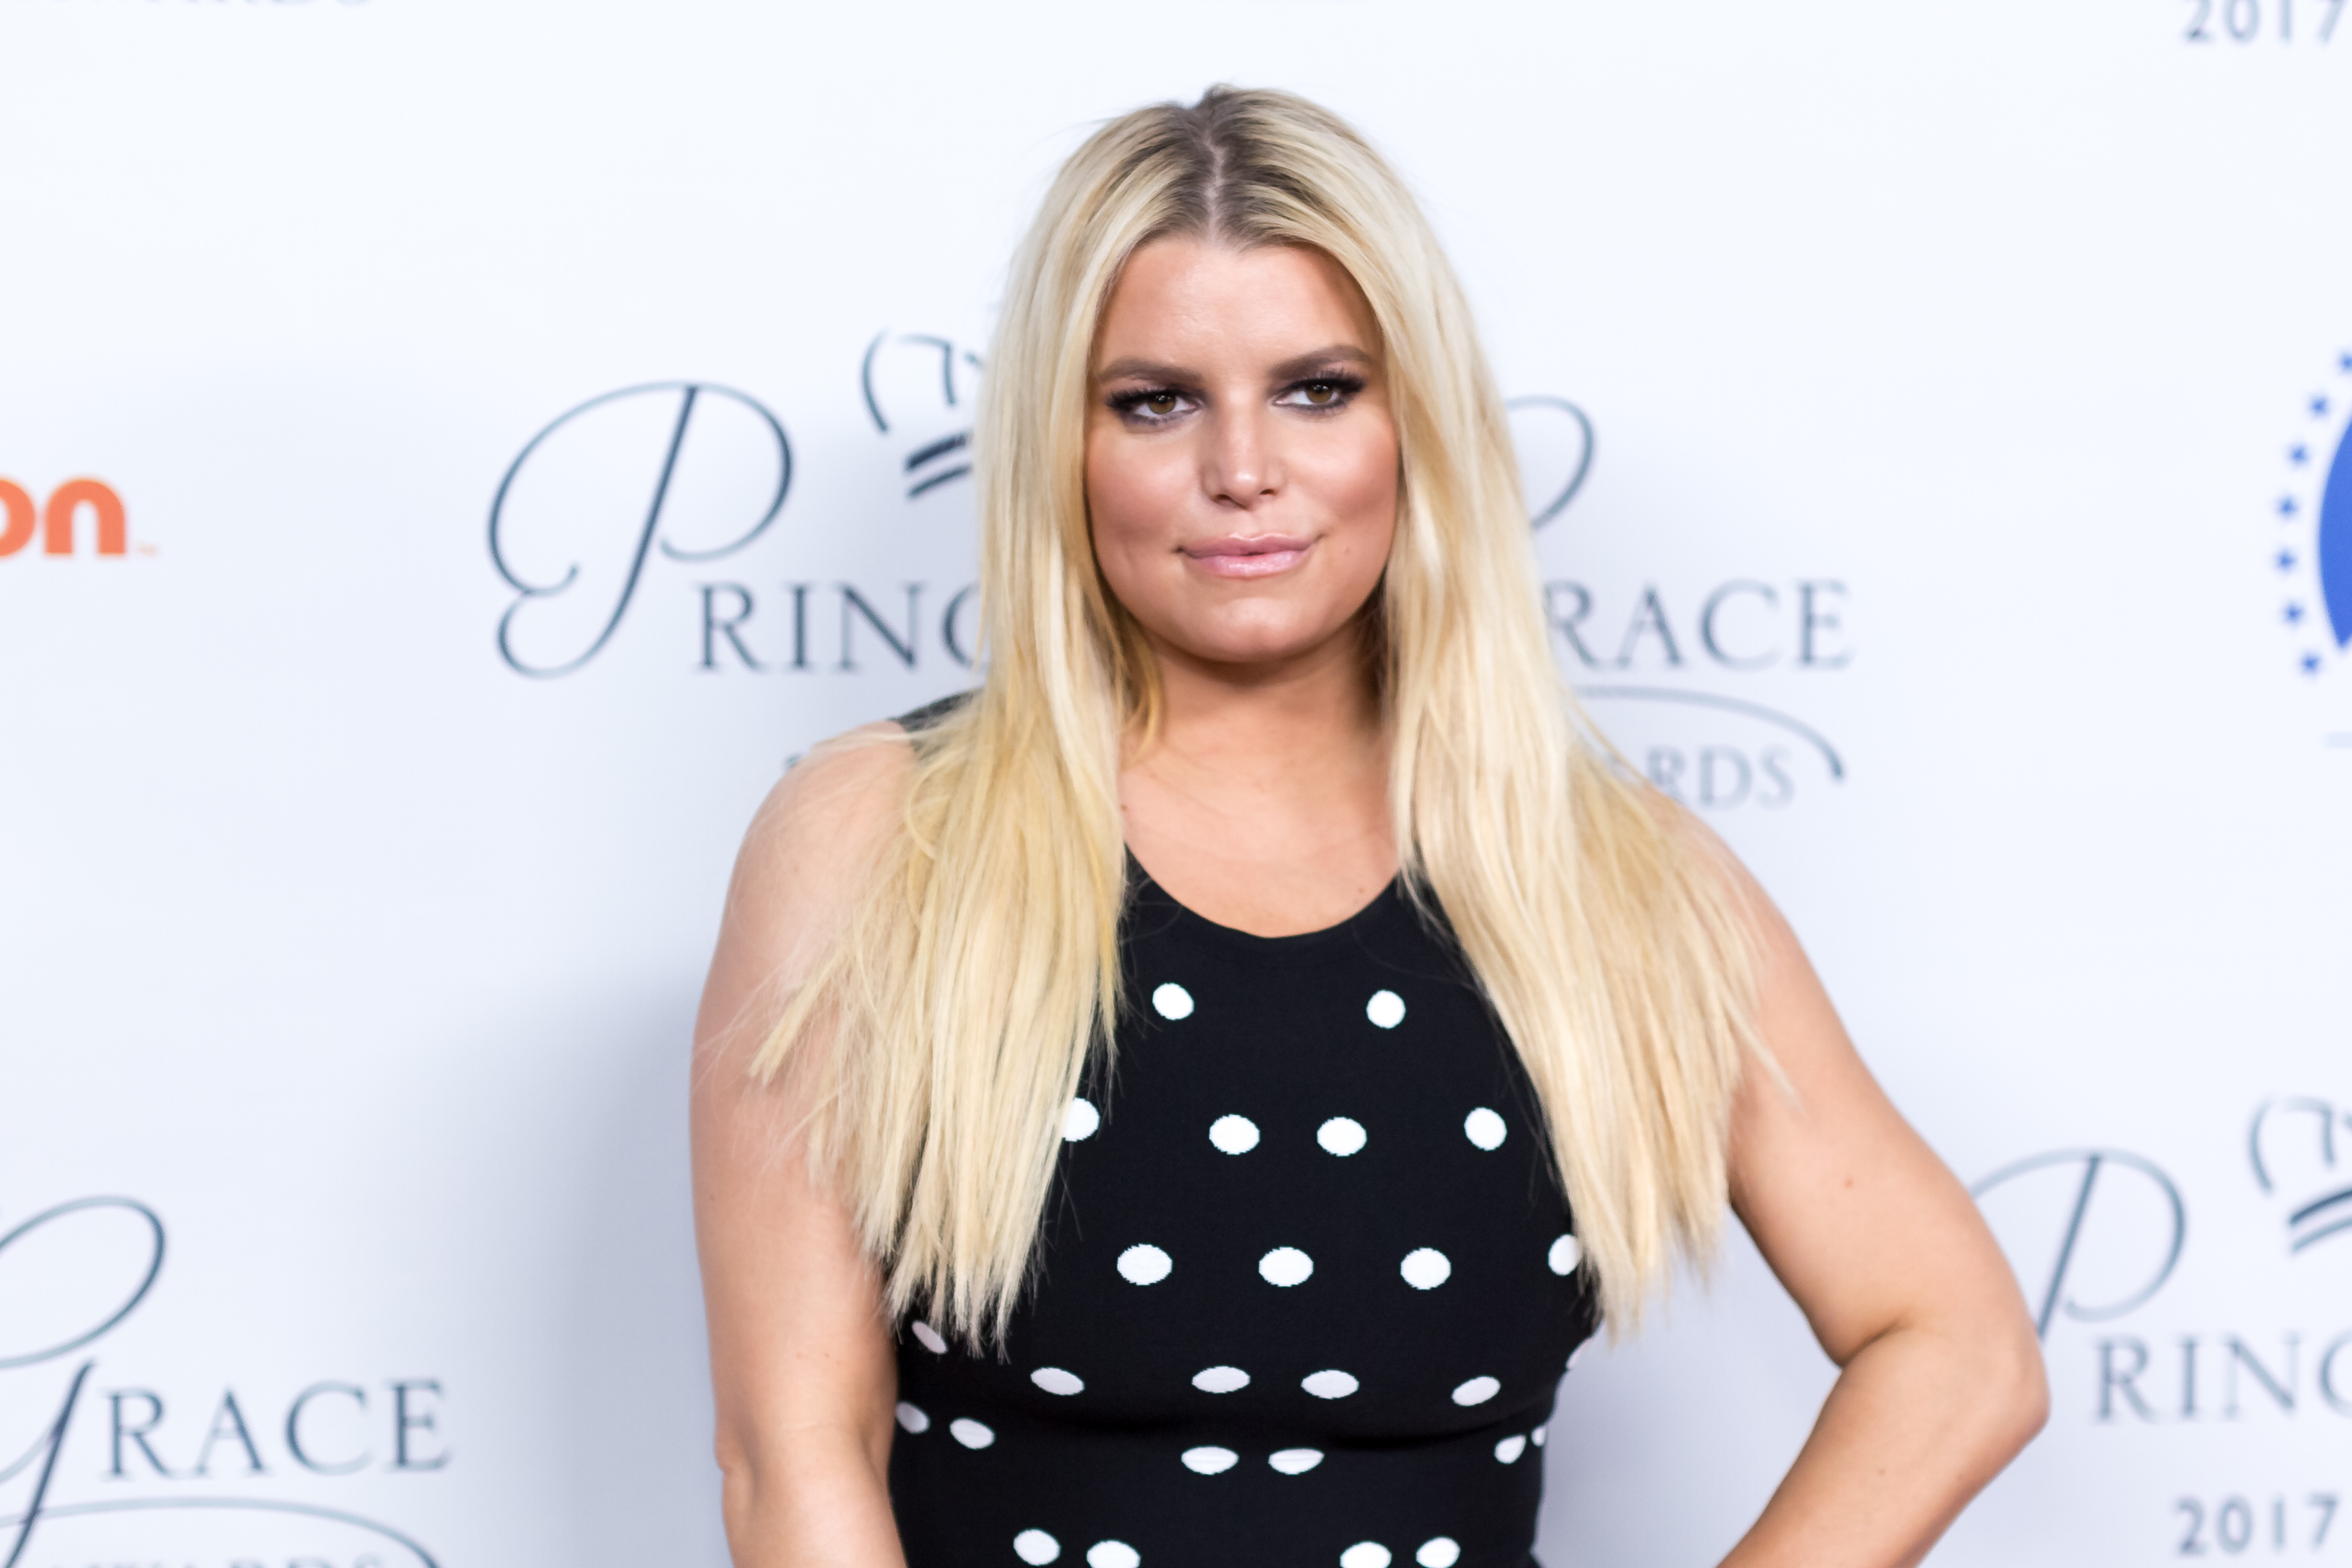 Jessica Simpson recalls taking diet pills to lose weight at the direction of a music exec: I was down to 103 pounds